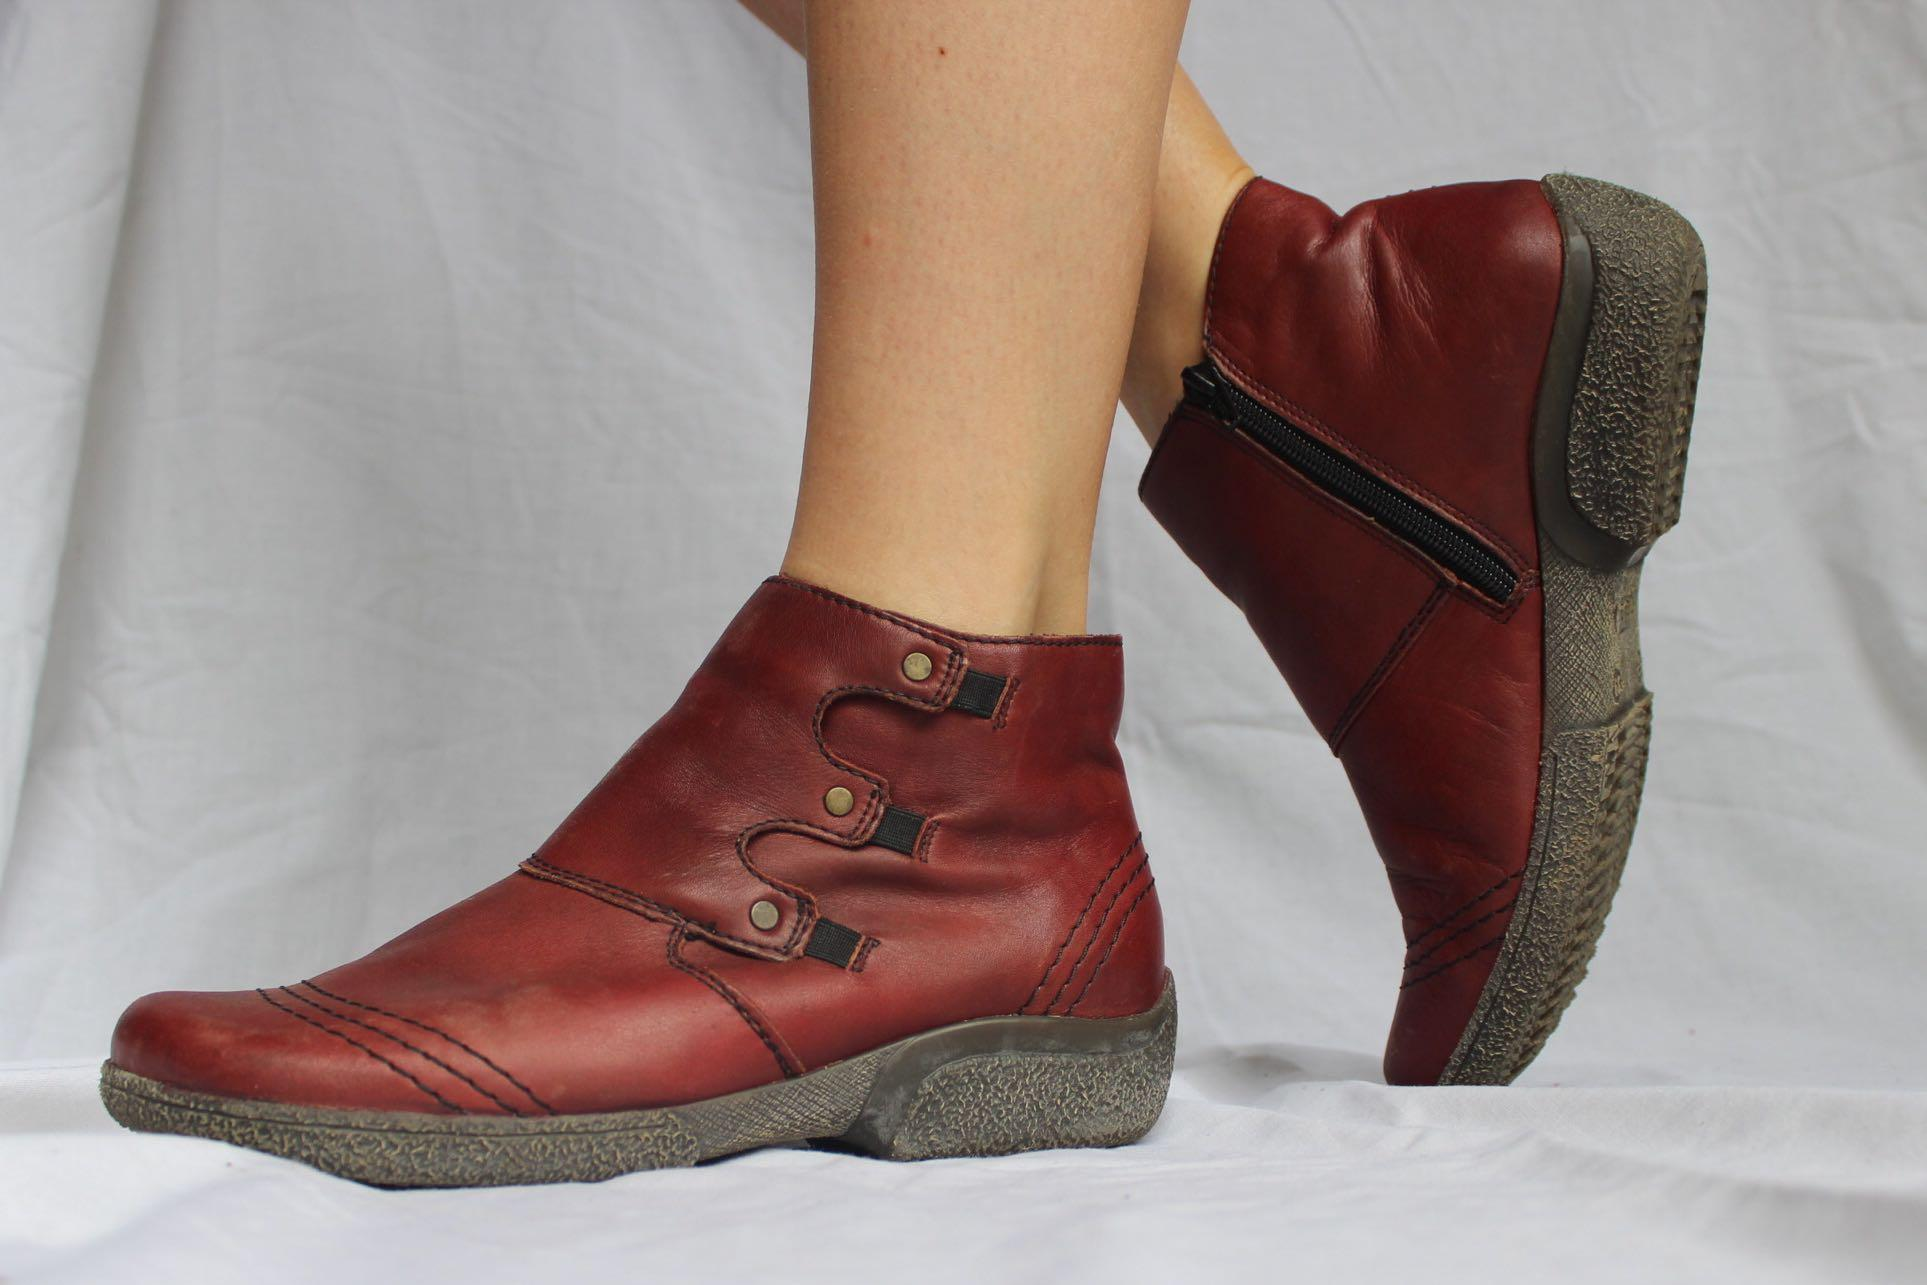 🌙 'RIEKER ANTISTRESS' RED PIXIE BOOTS 🌙